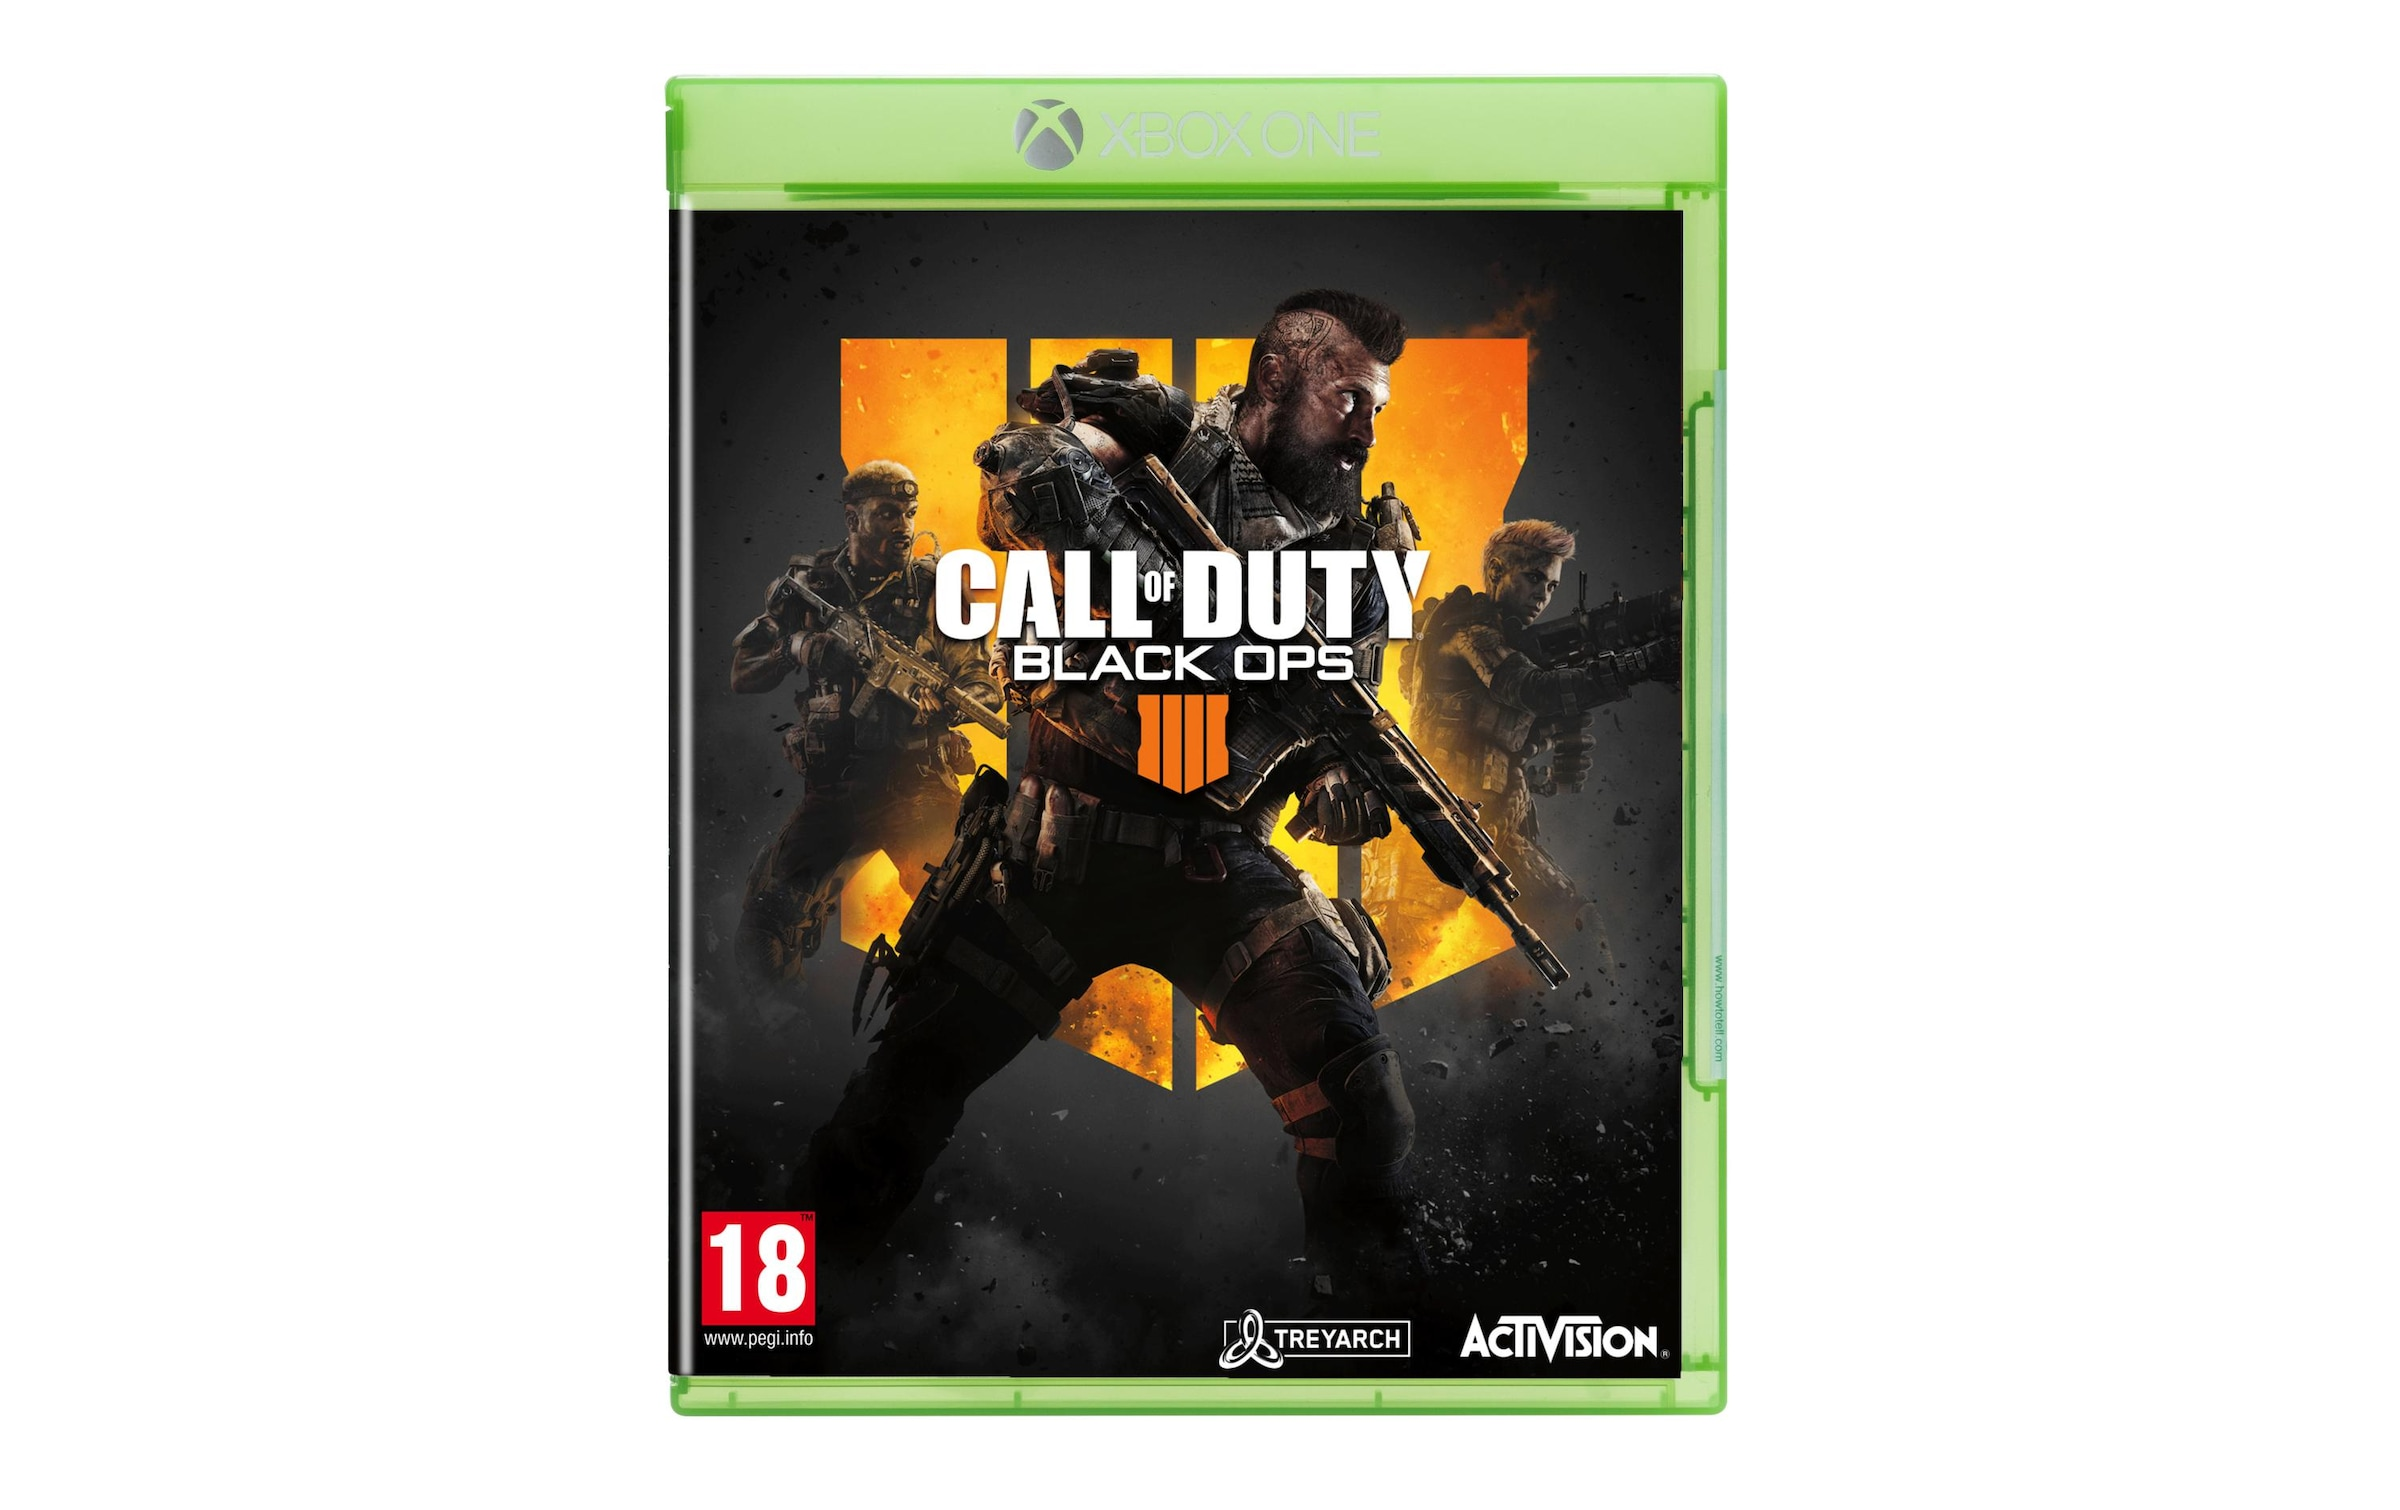 Image of Call of Duty Black Ops 4, Activision